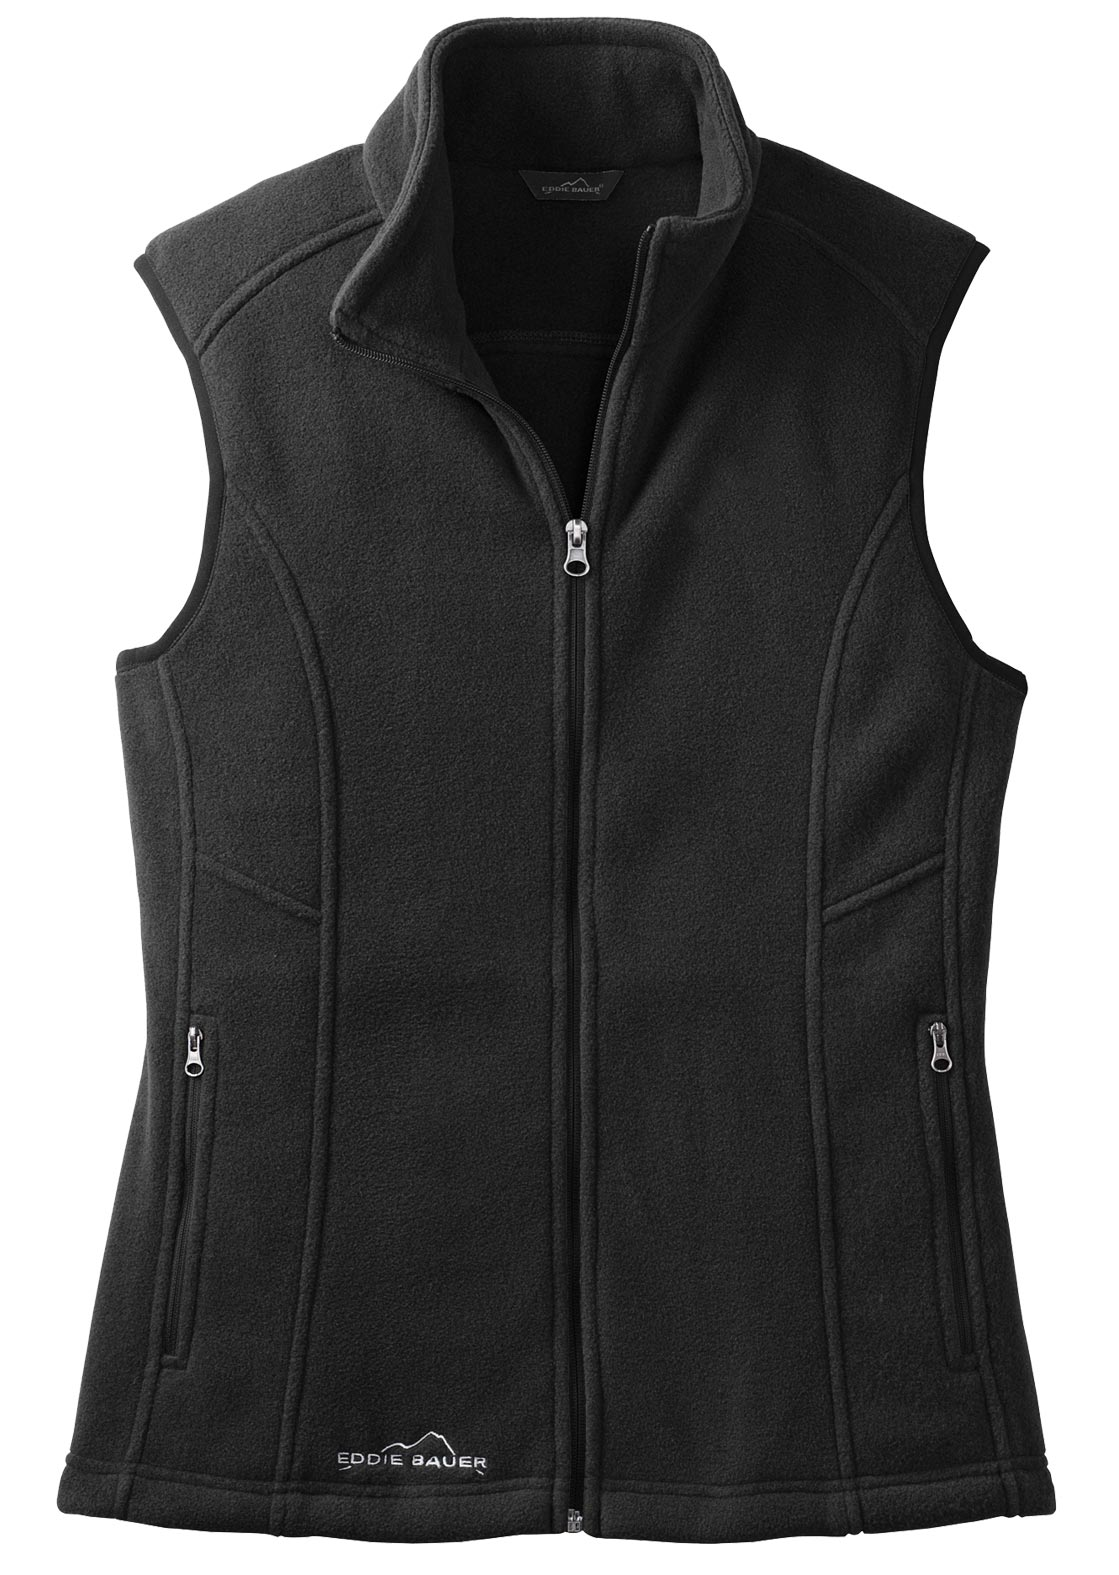 Eddie Bauer® Ladies Full-zip Fleece Vest